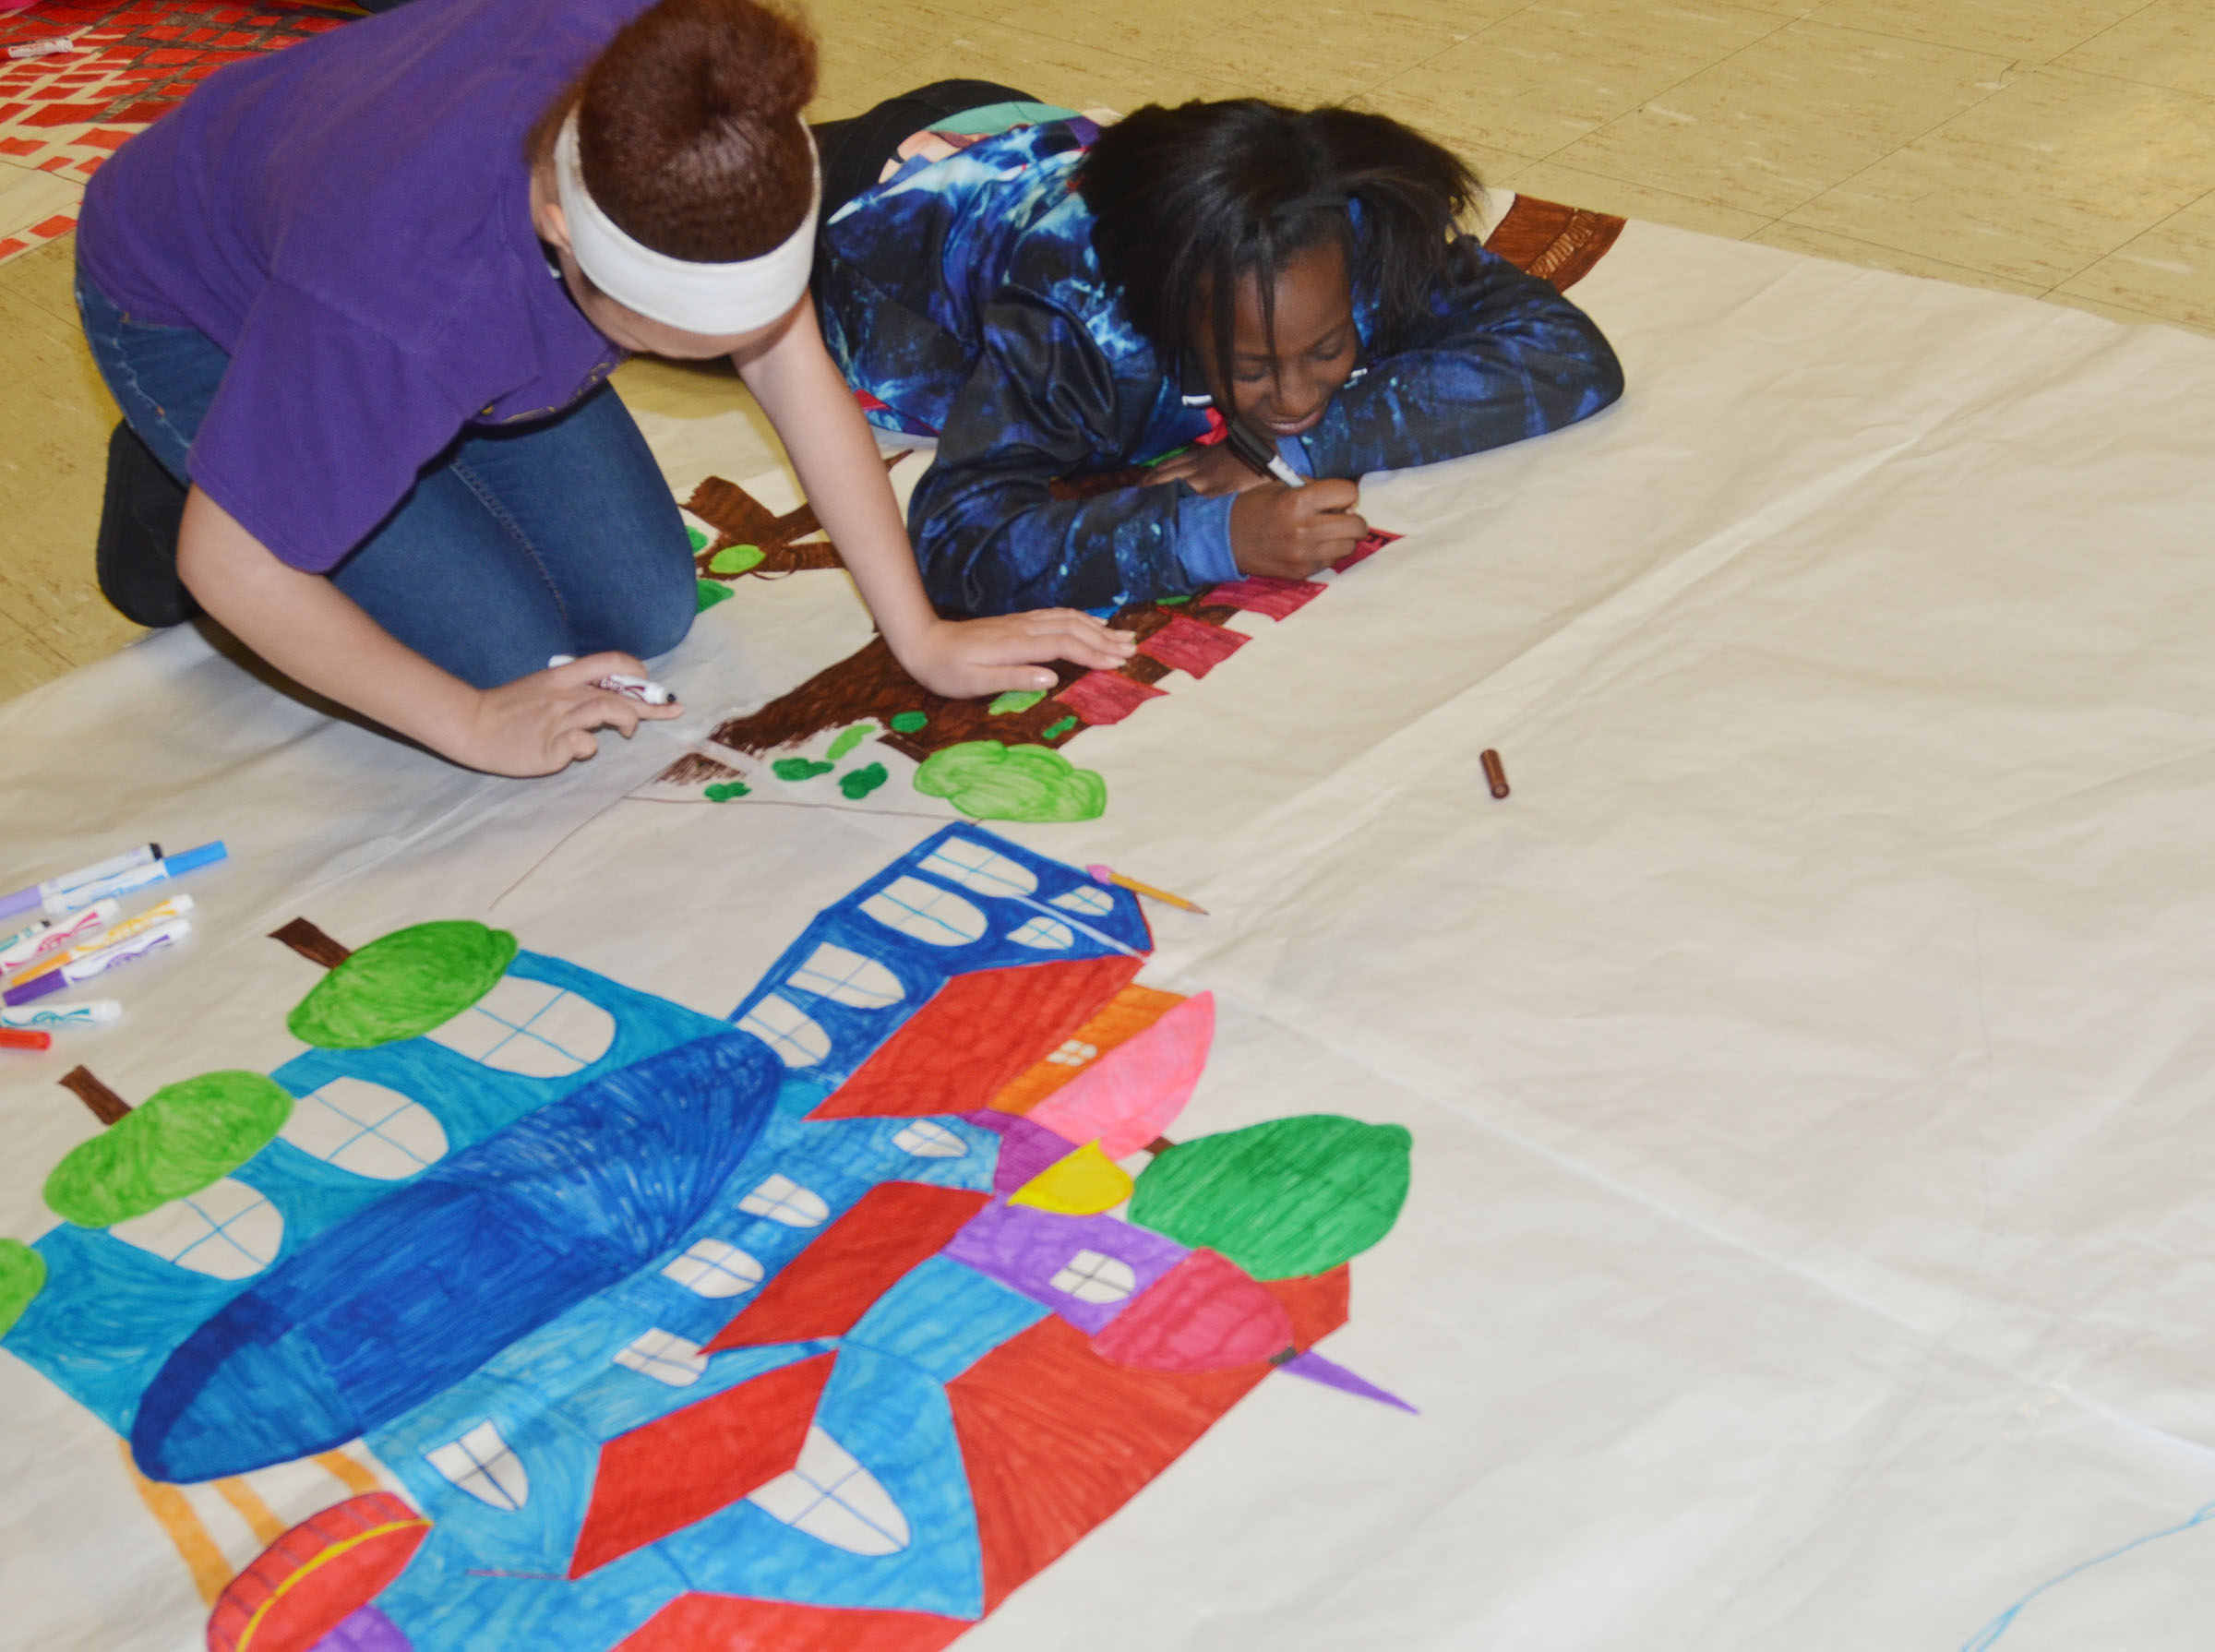 CMS seventh-graders Kitana Taylor, at left, and Myricle Gholston color a scene from their book.